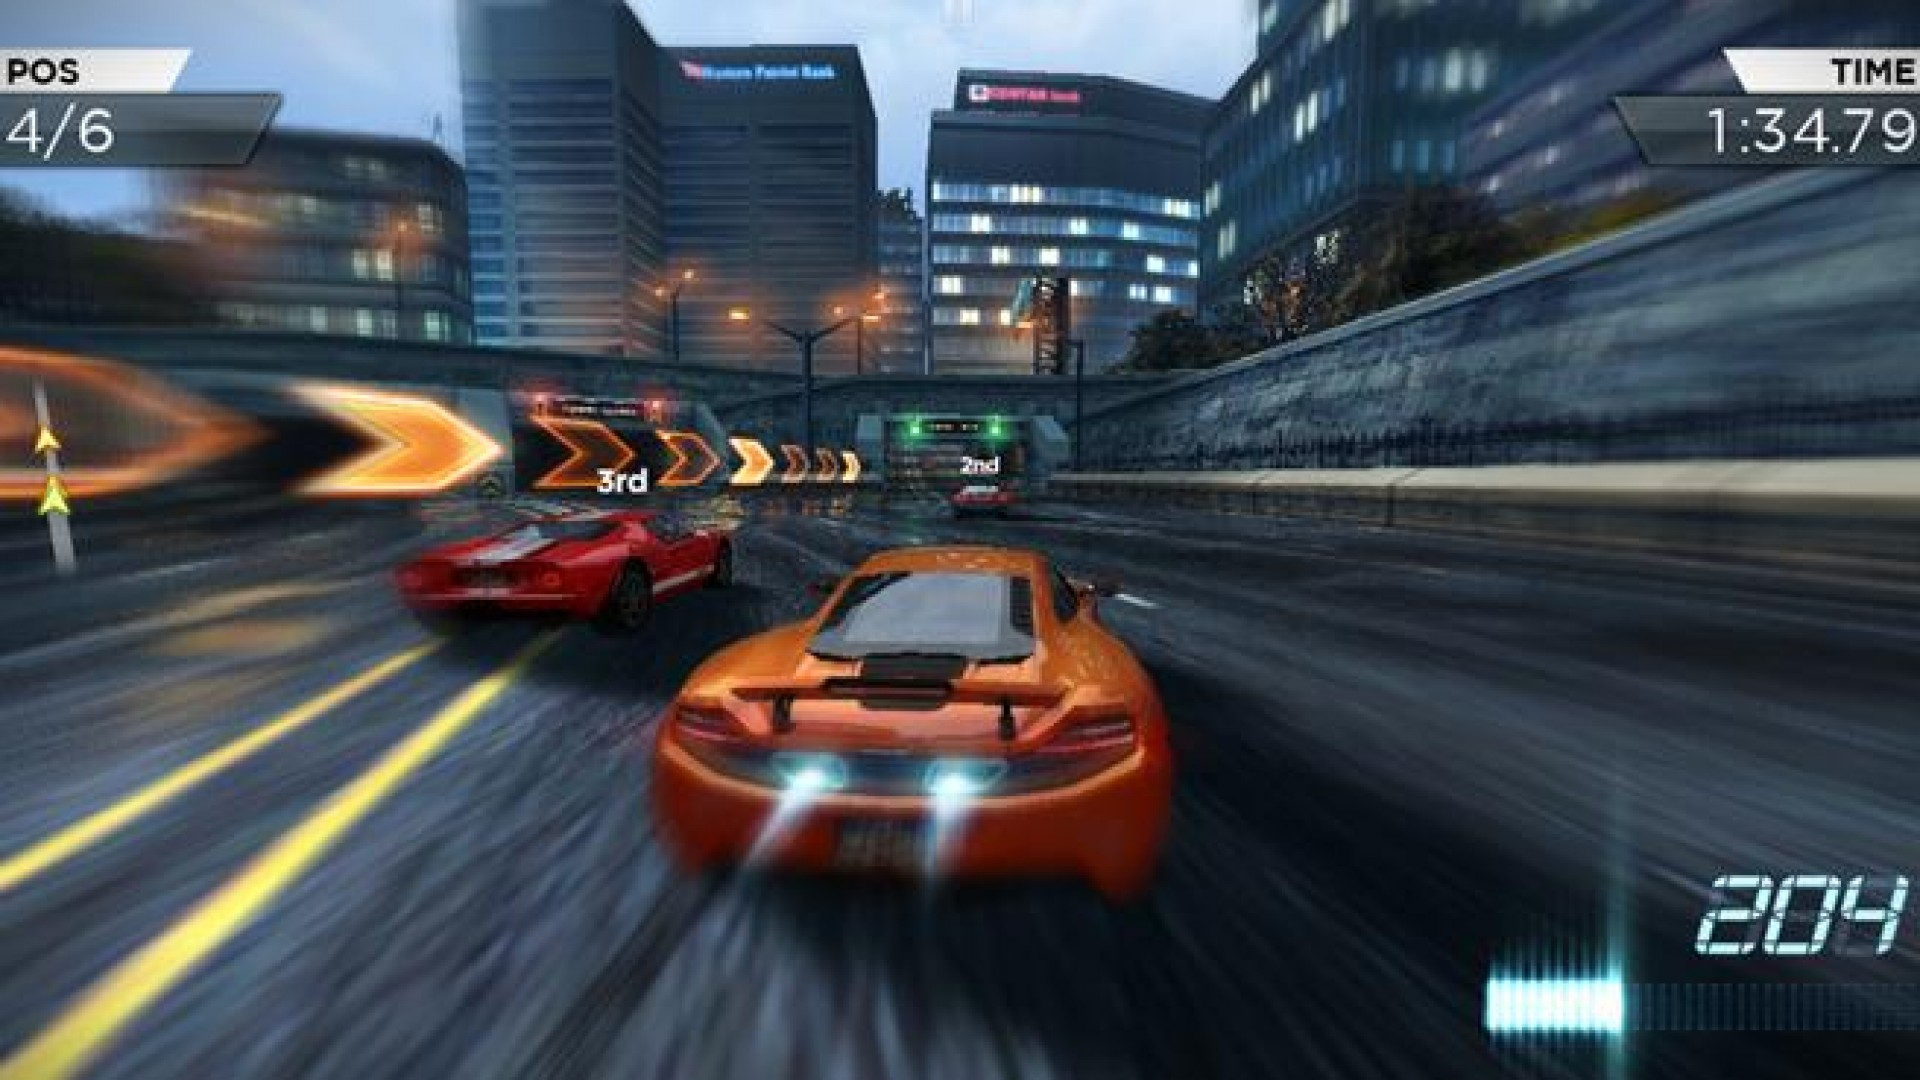 Files which can be opened by Need for Speed Most Wanted